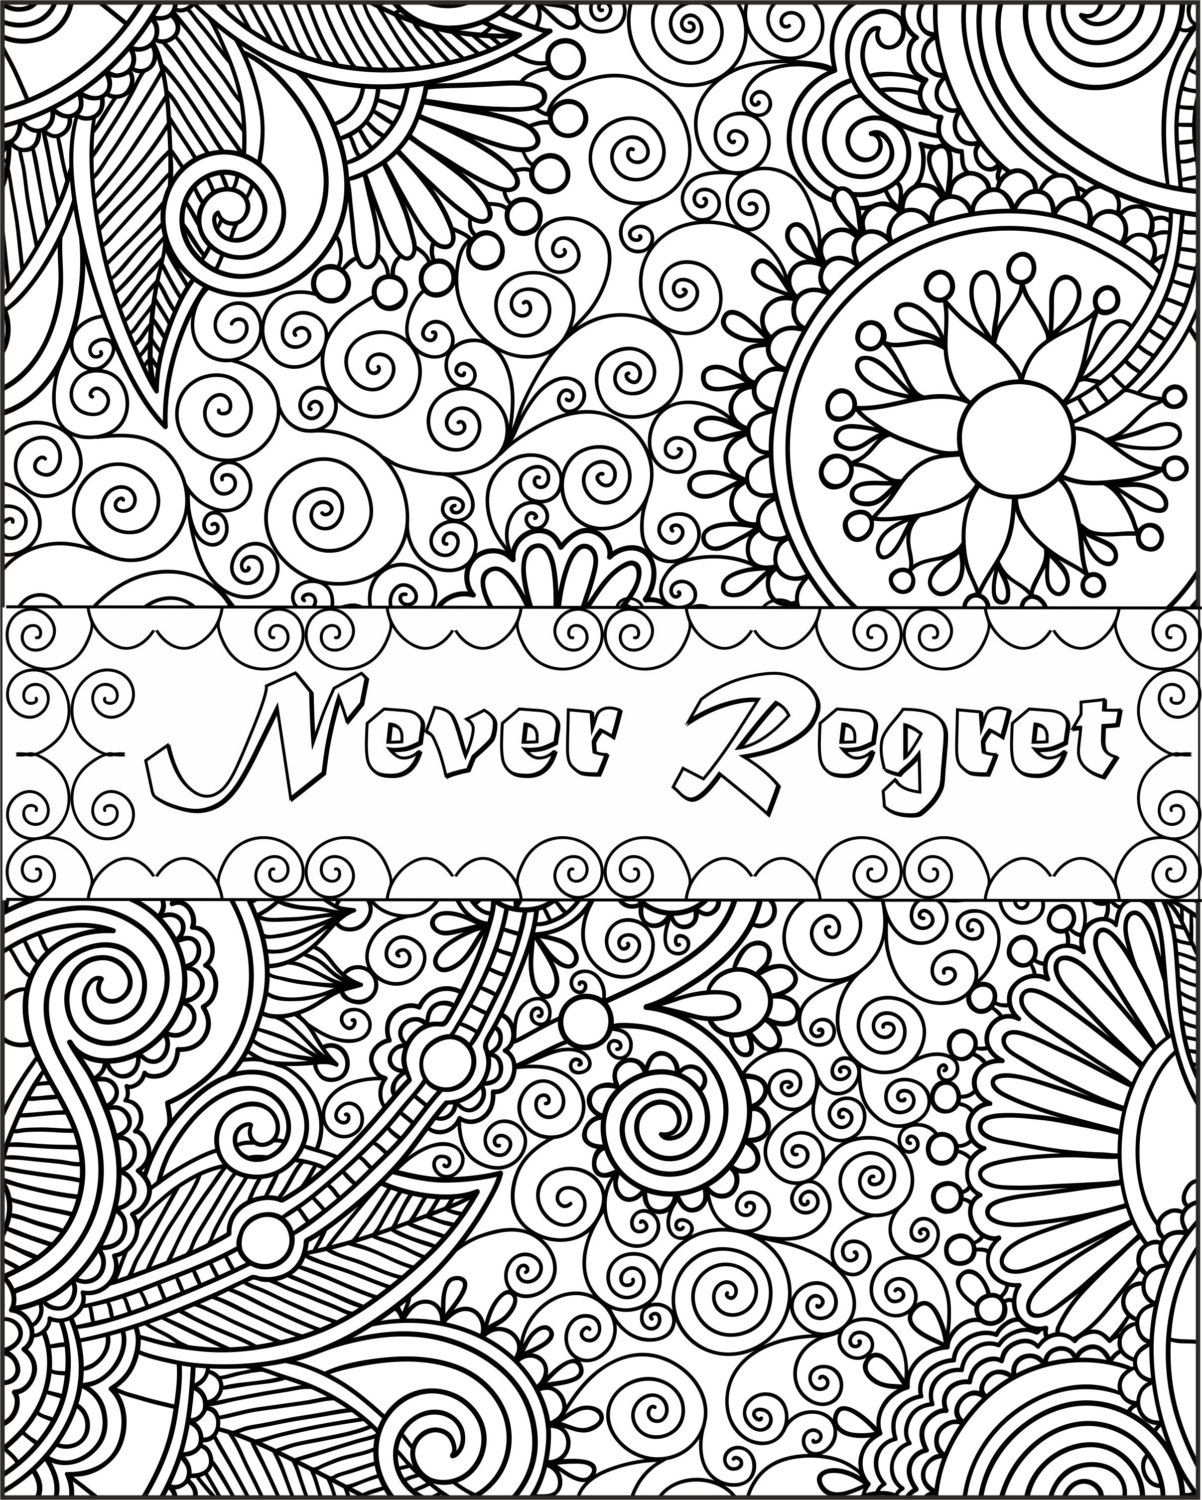 Printable Inspirational Quotes Coloring Pages Gallery